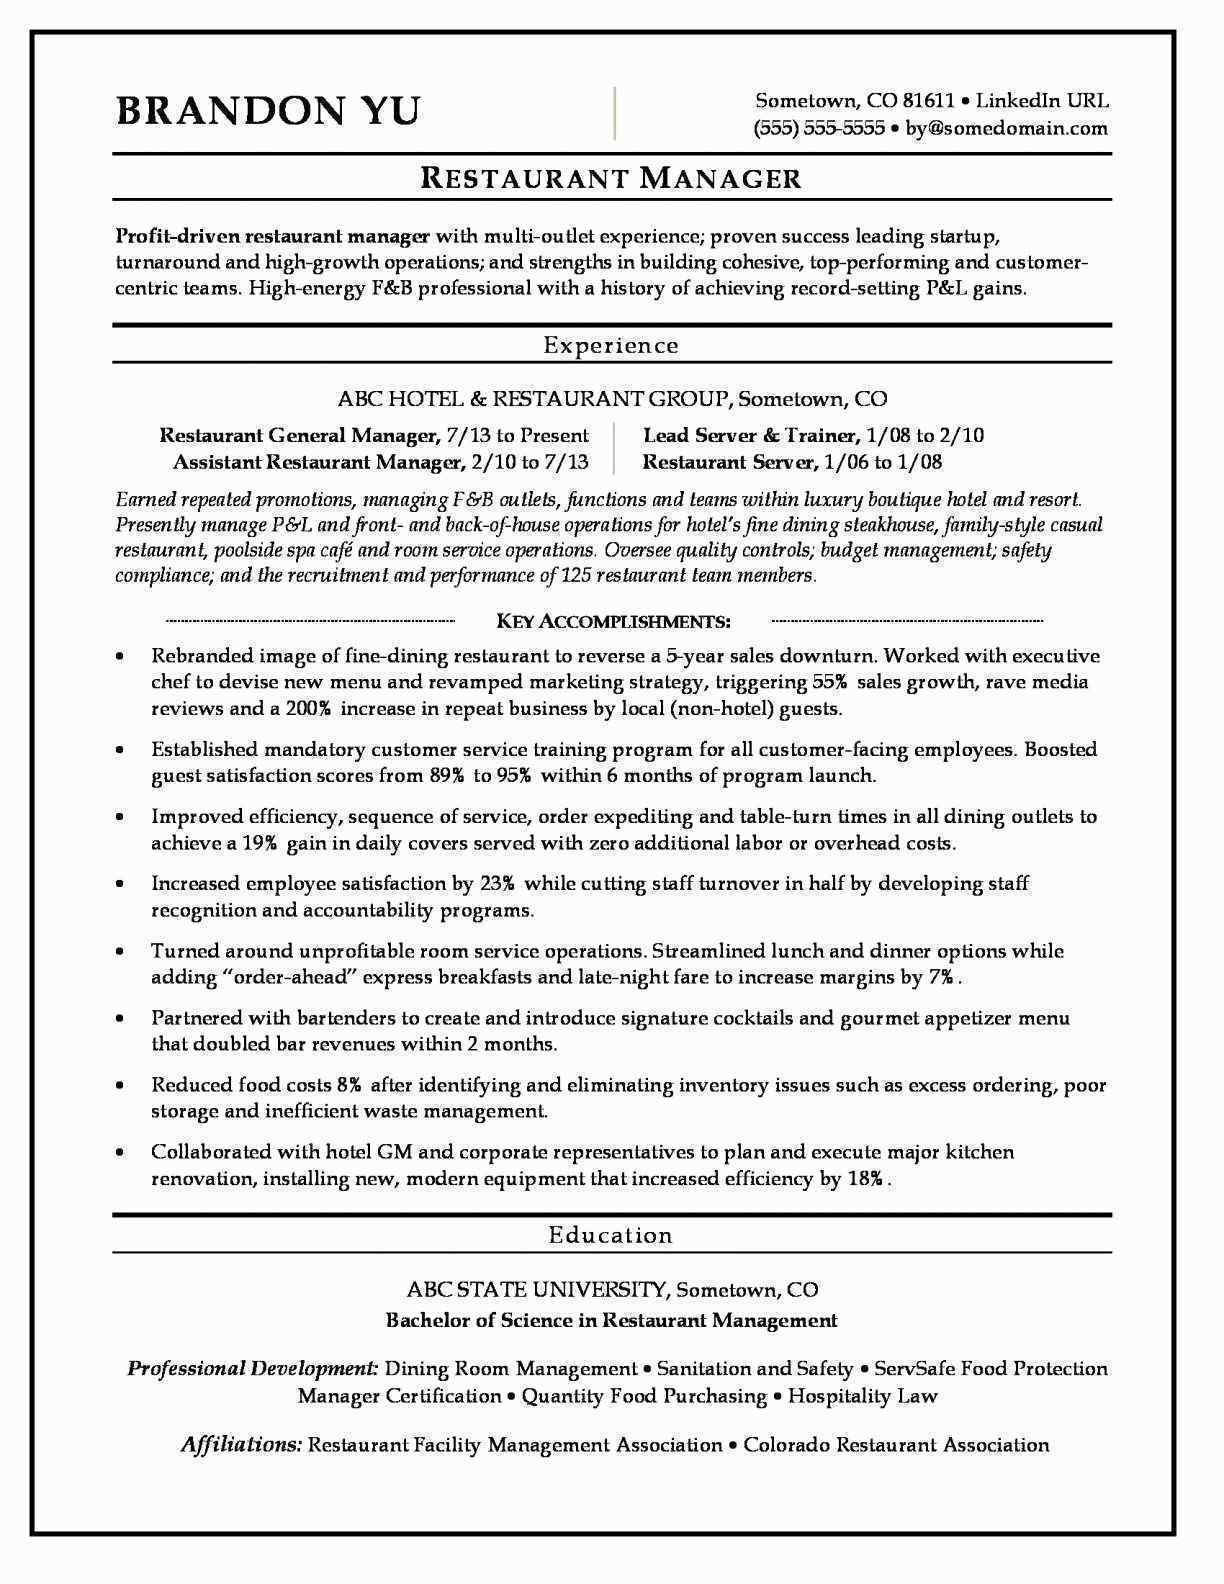 Hospitality Manager Resume - Resume Samples for Hospitality Industry Elegant ¢Ë†Å¡ Google Docs